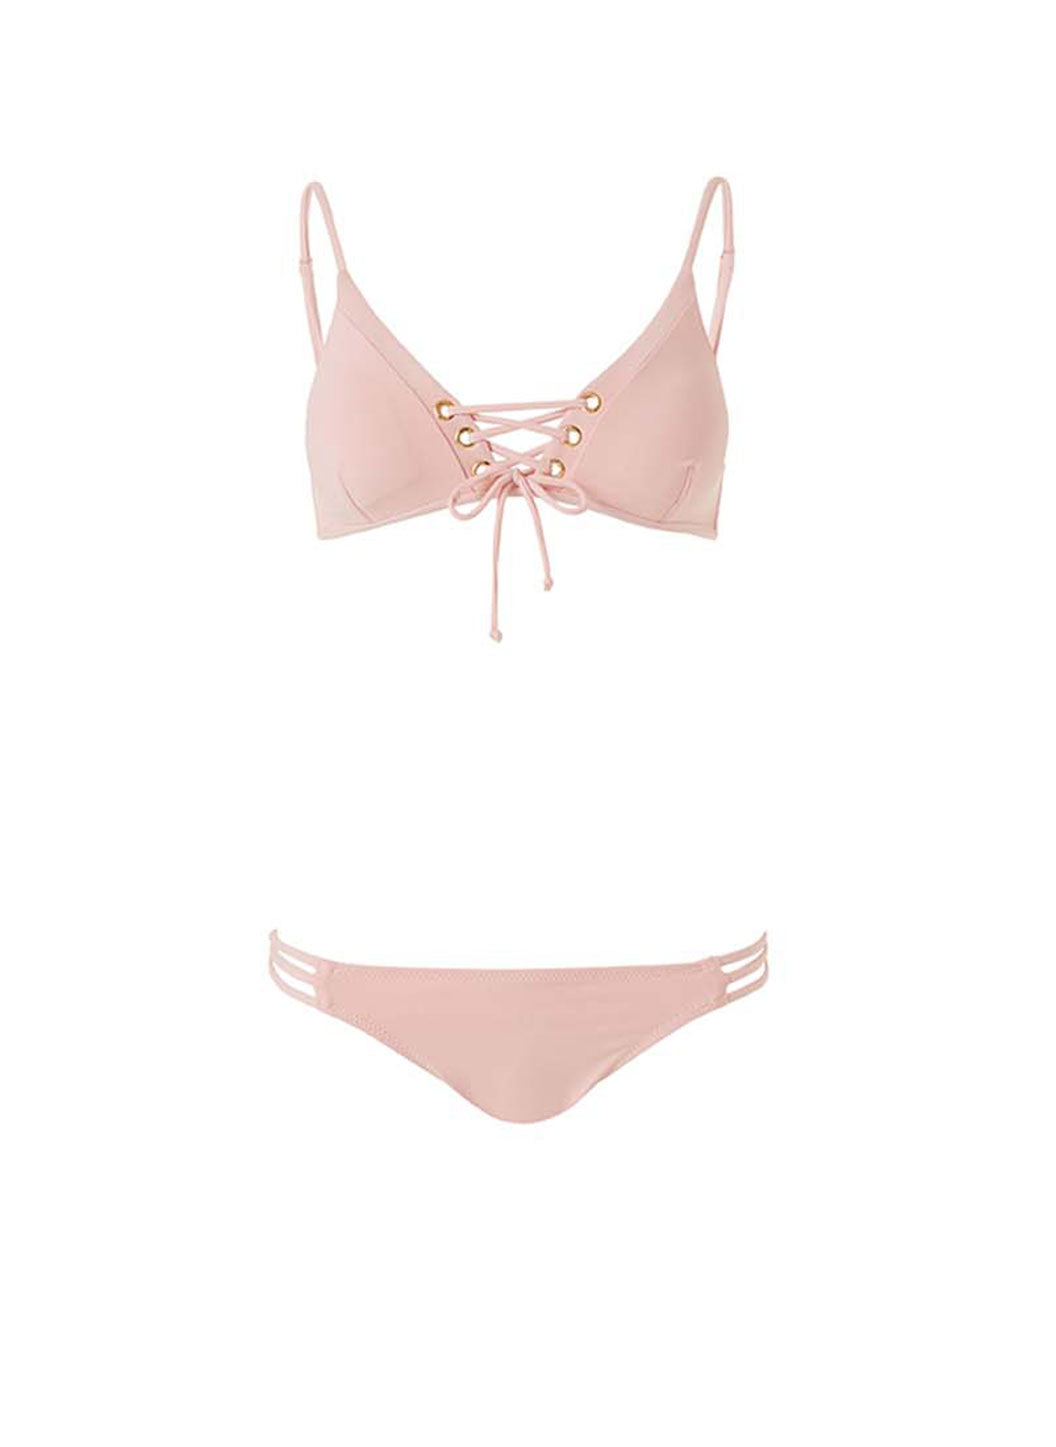 Marrakech Blush Bikini